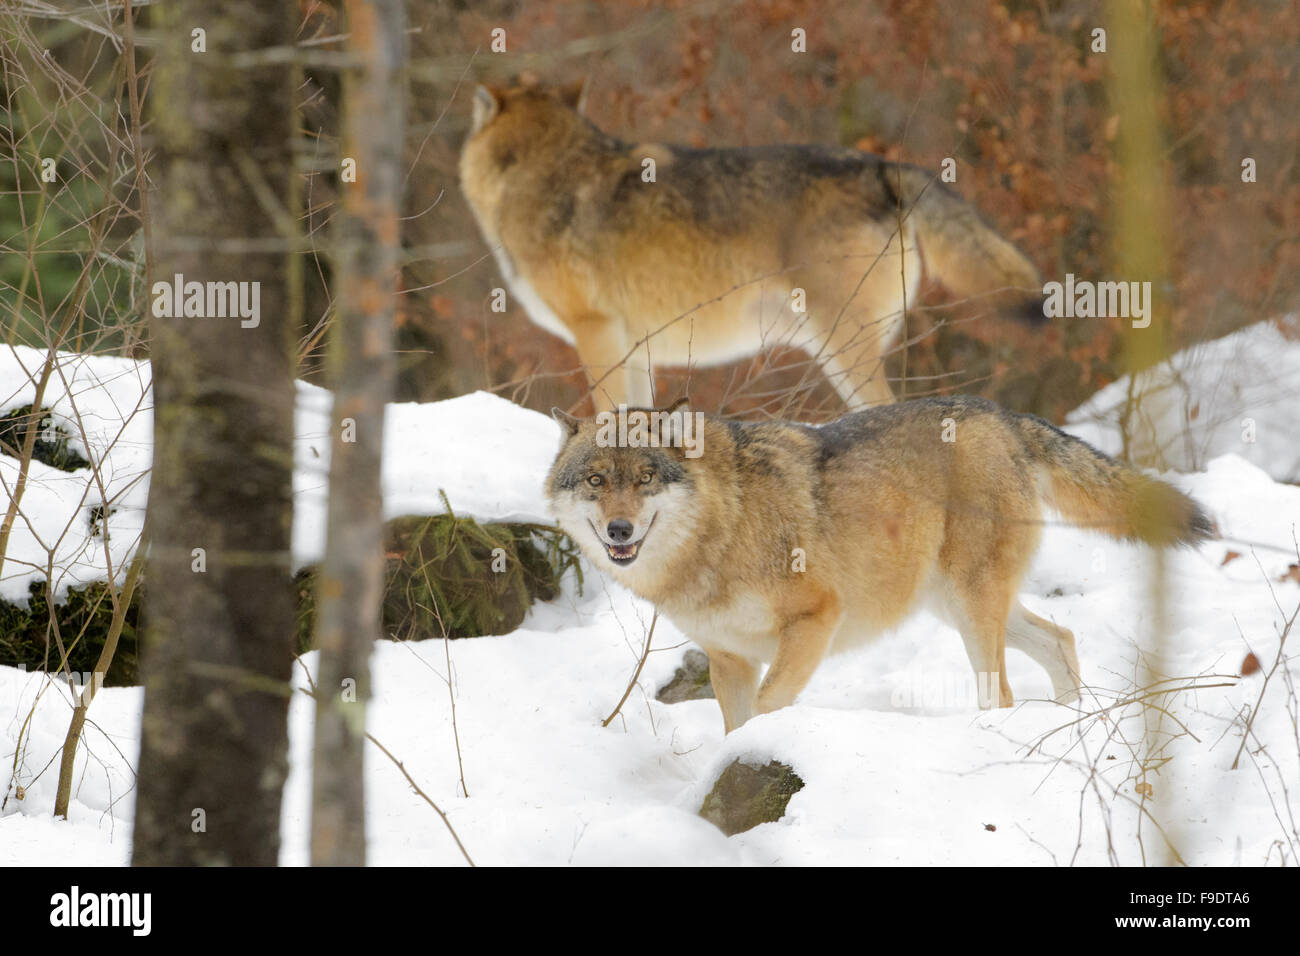 European wolf (Canis lupus lupus) together in the forest with snow, looking at camera, Bavarian forest, Germany - Stock Image